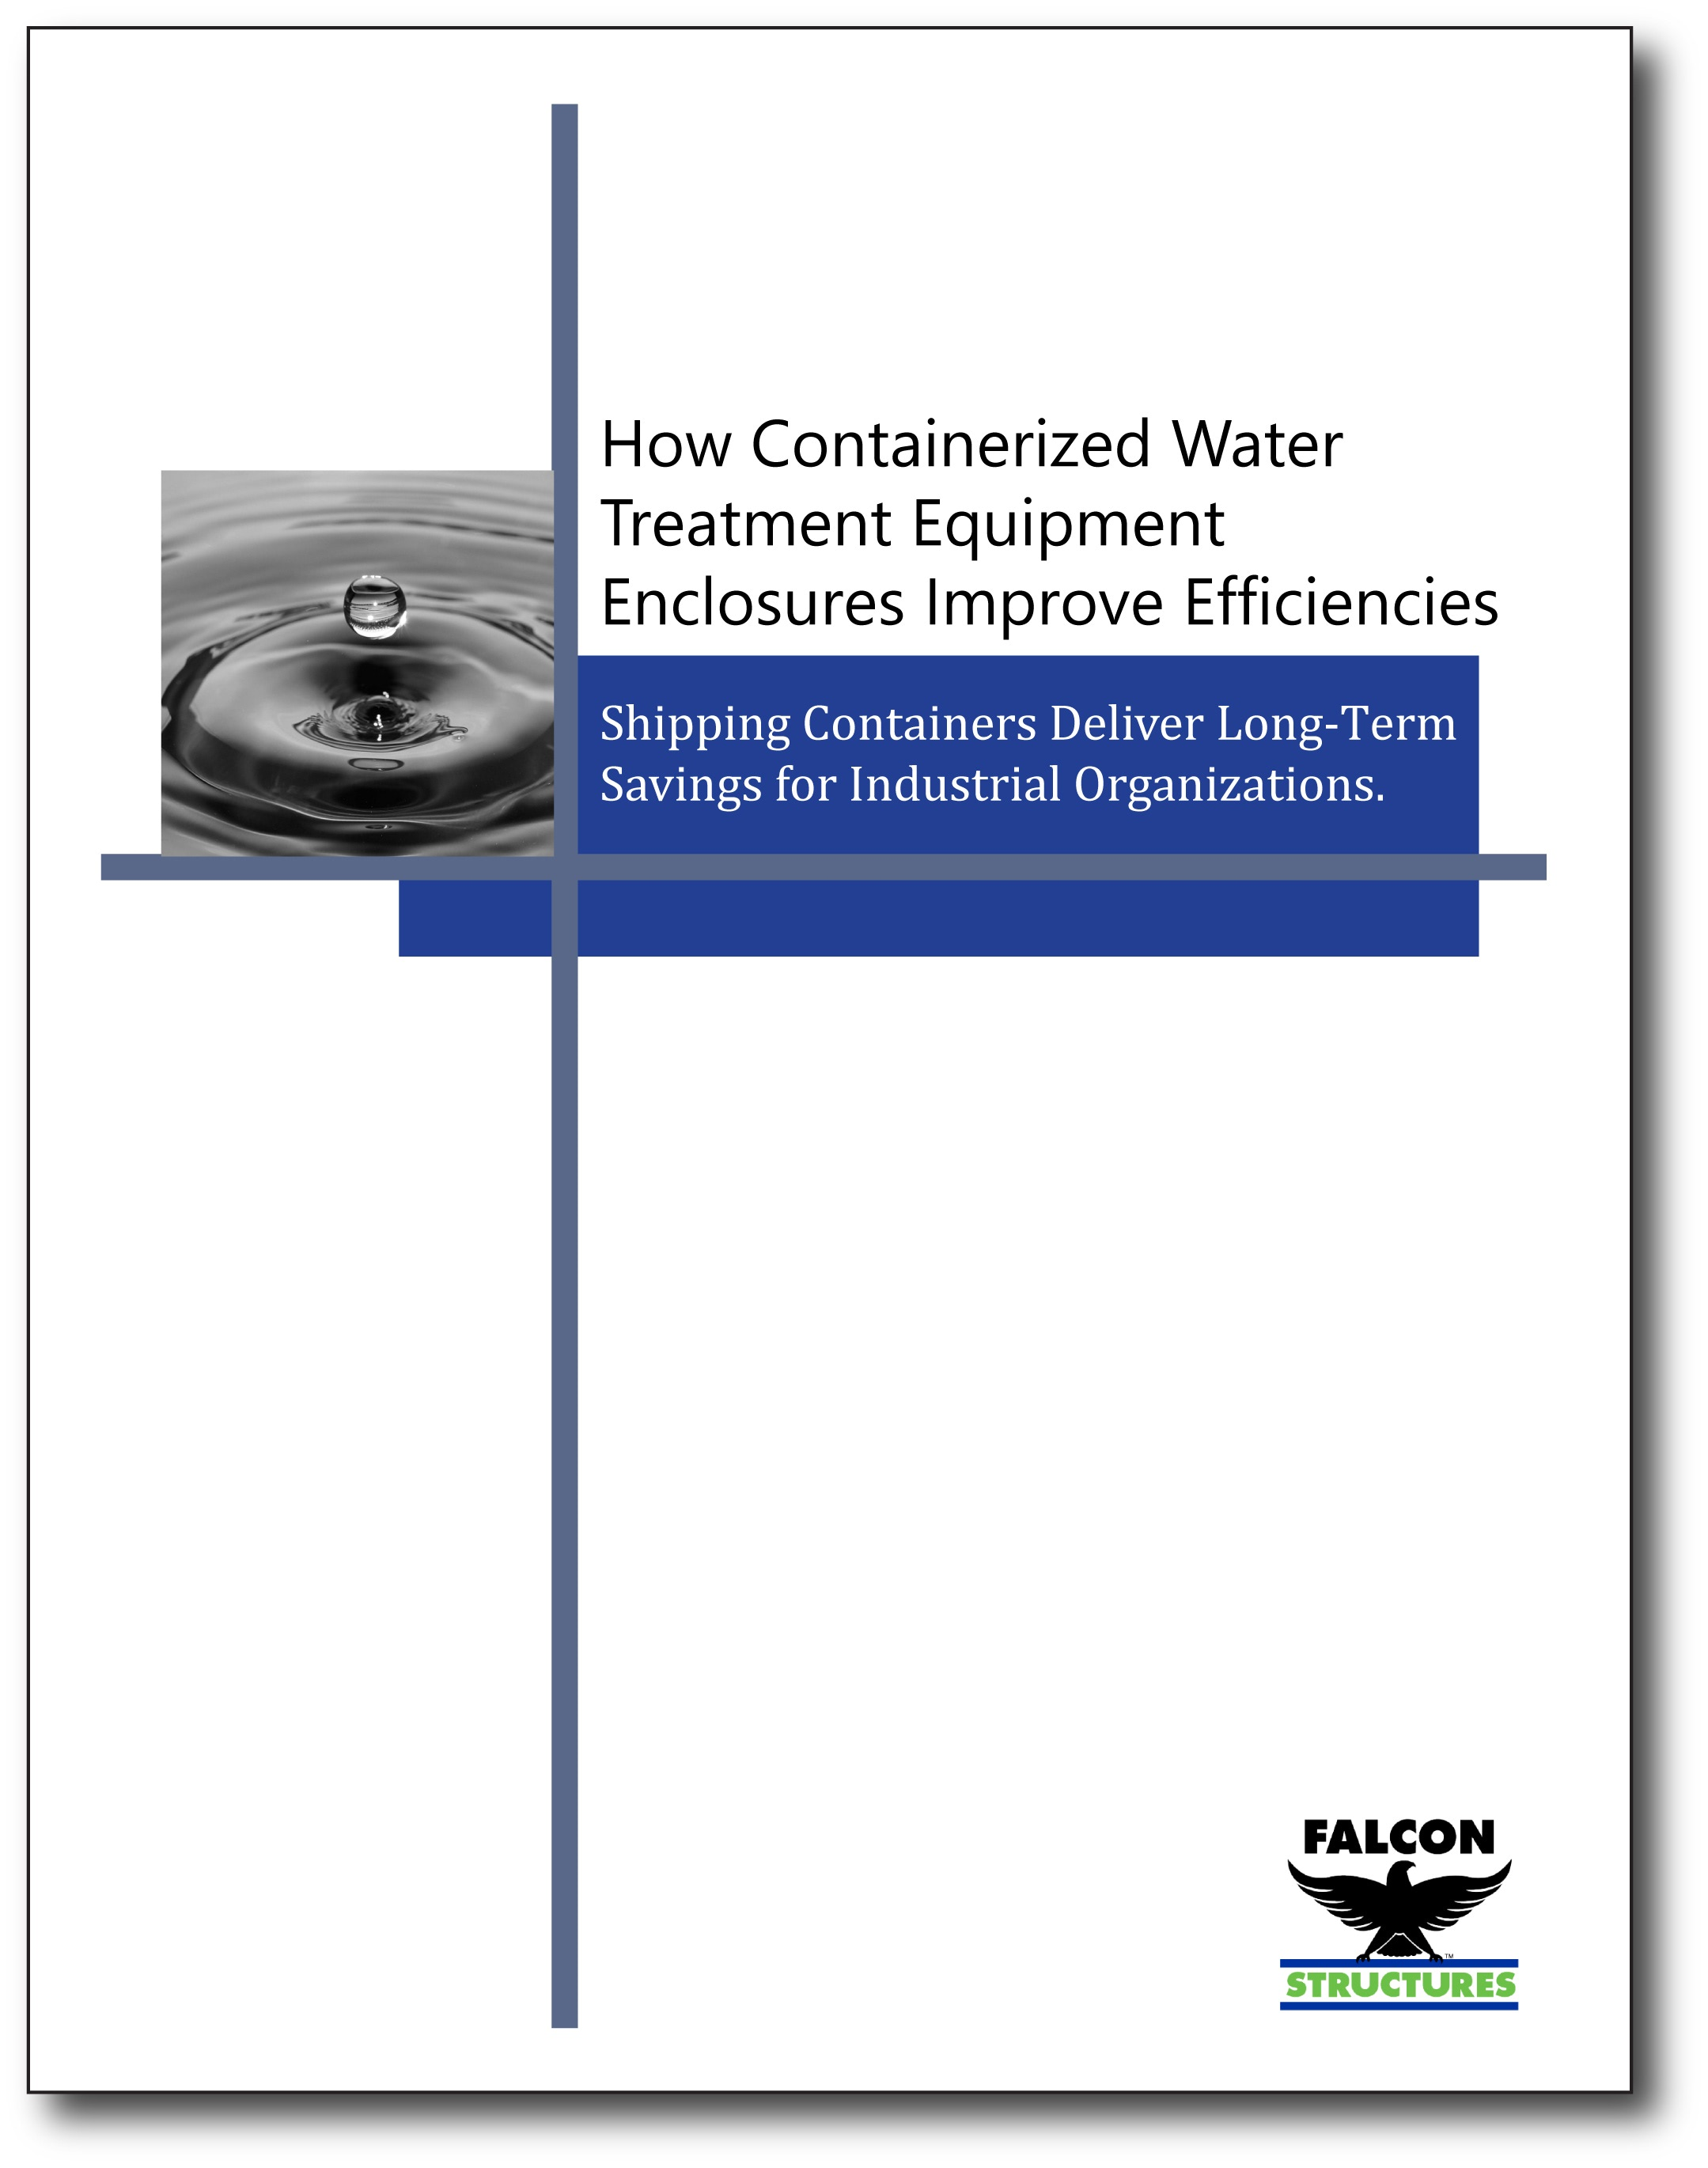 Guide: How Containerized Water Treatment Equipment Enclosures Improve Efficiencies Shipping containers deliver long-term savings for industrial organizations.